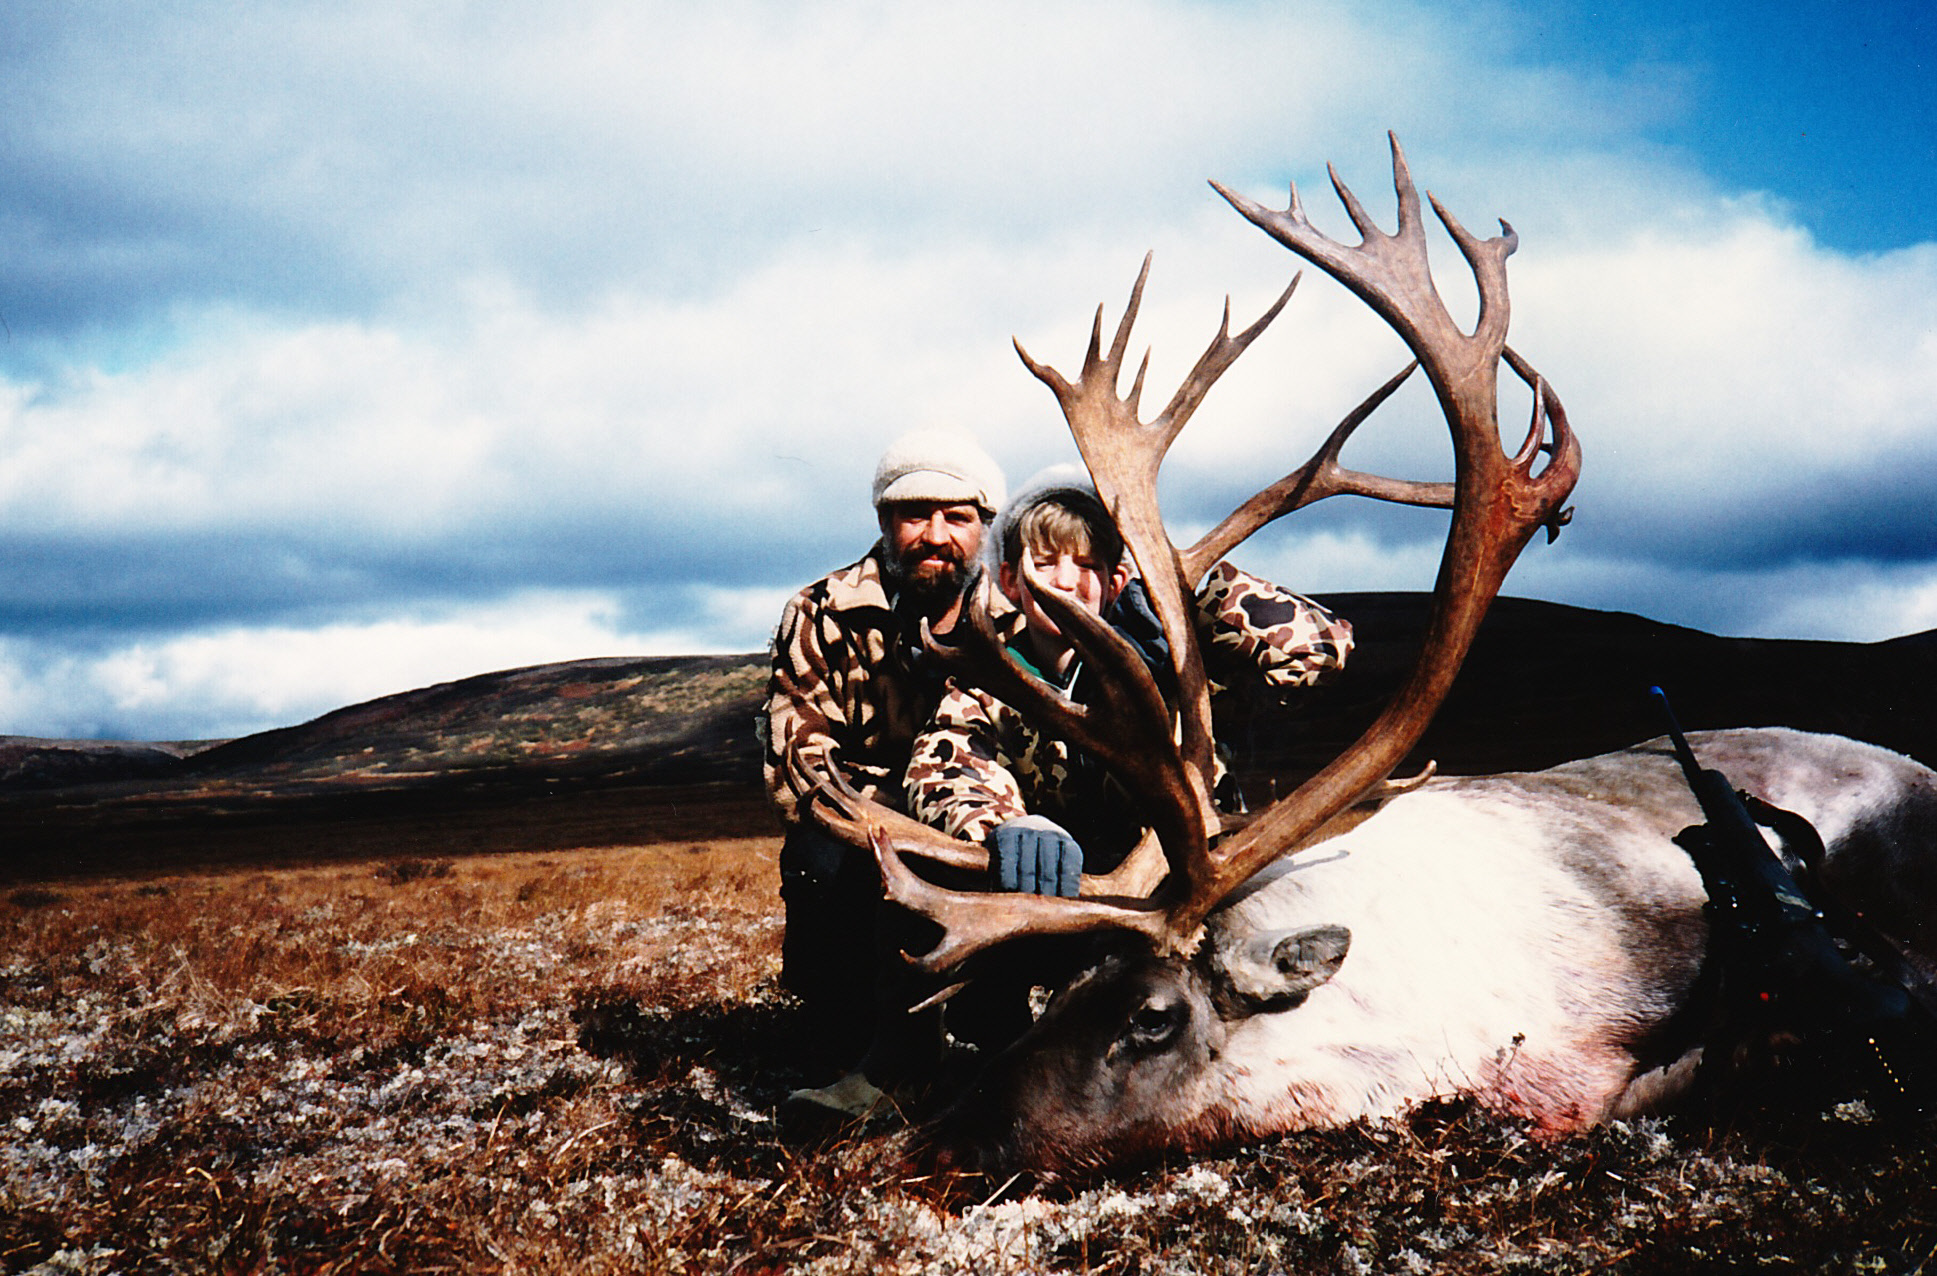 Frank and me with his 399 1/8 B&C caribou. It was a super nice caribou.